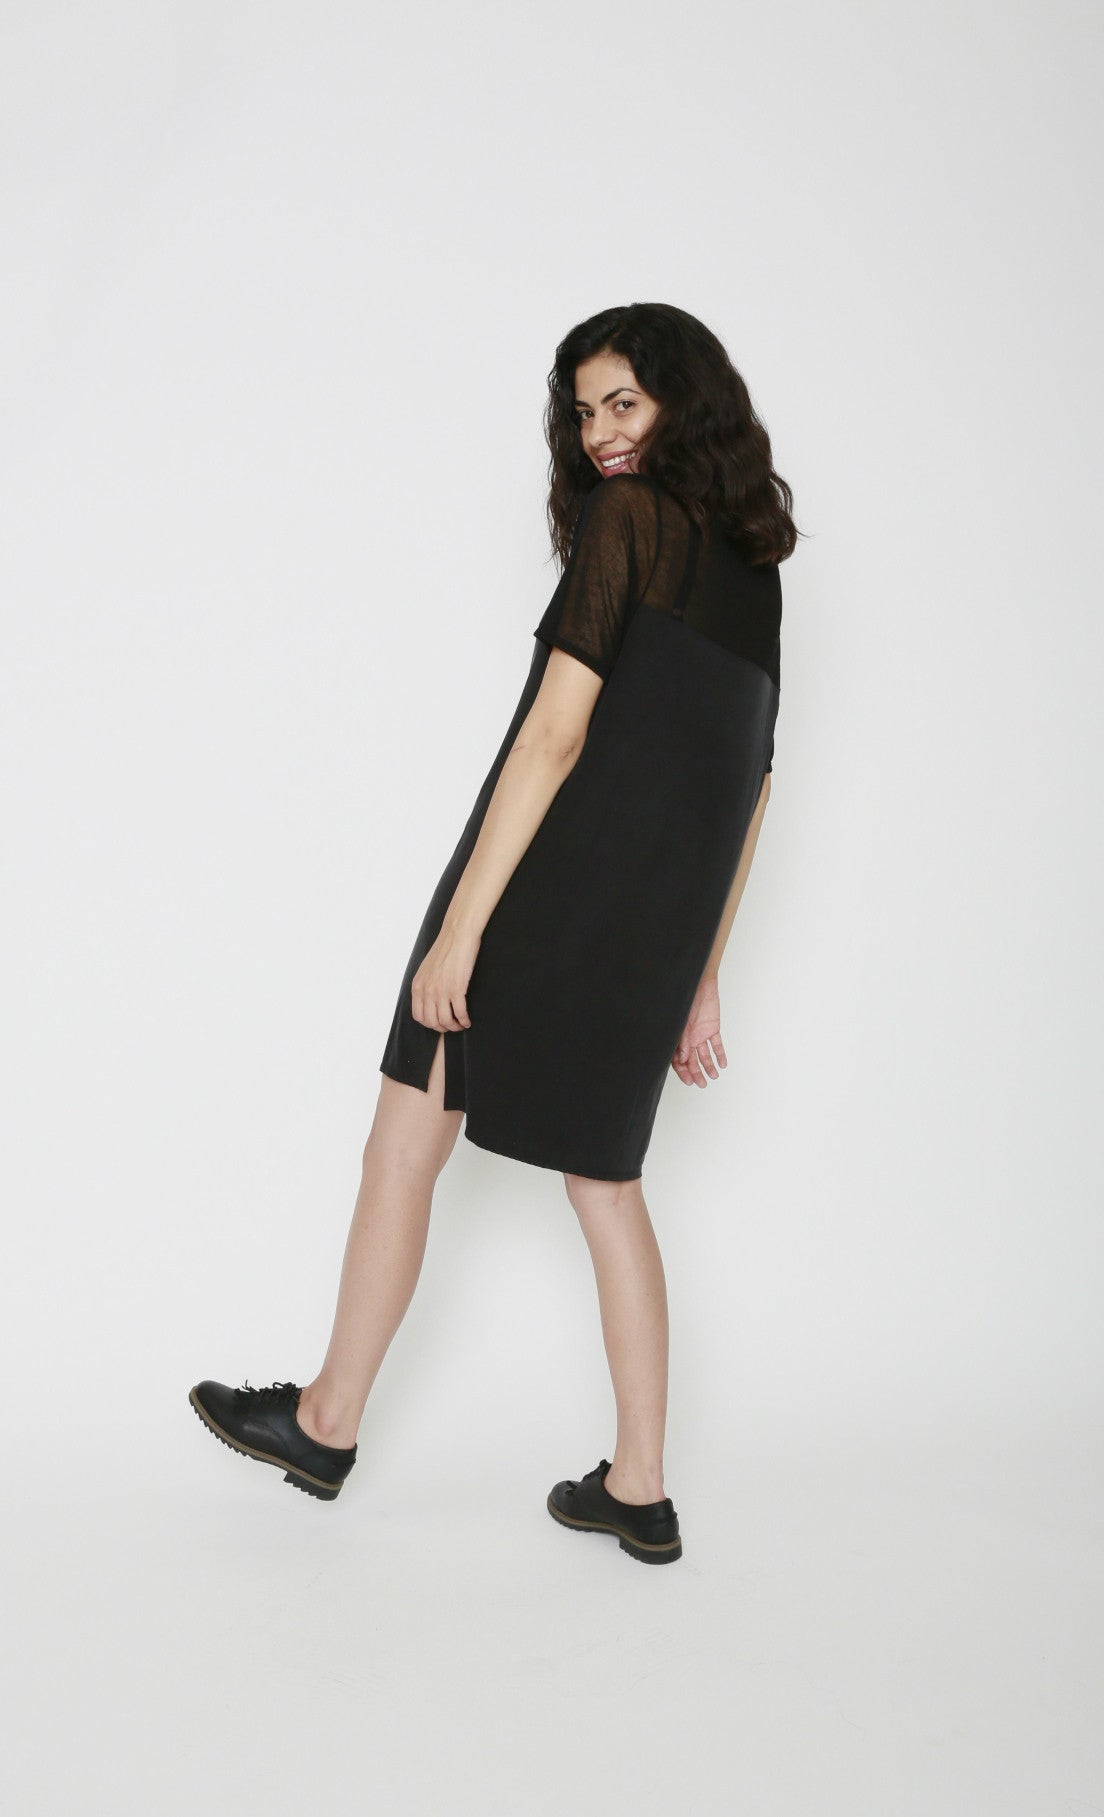 34°N 118°W Mateo Sheer Back Tshirt Dress